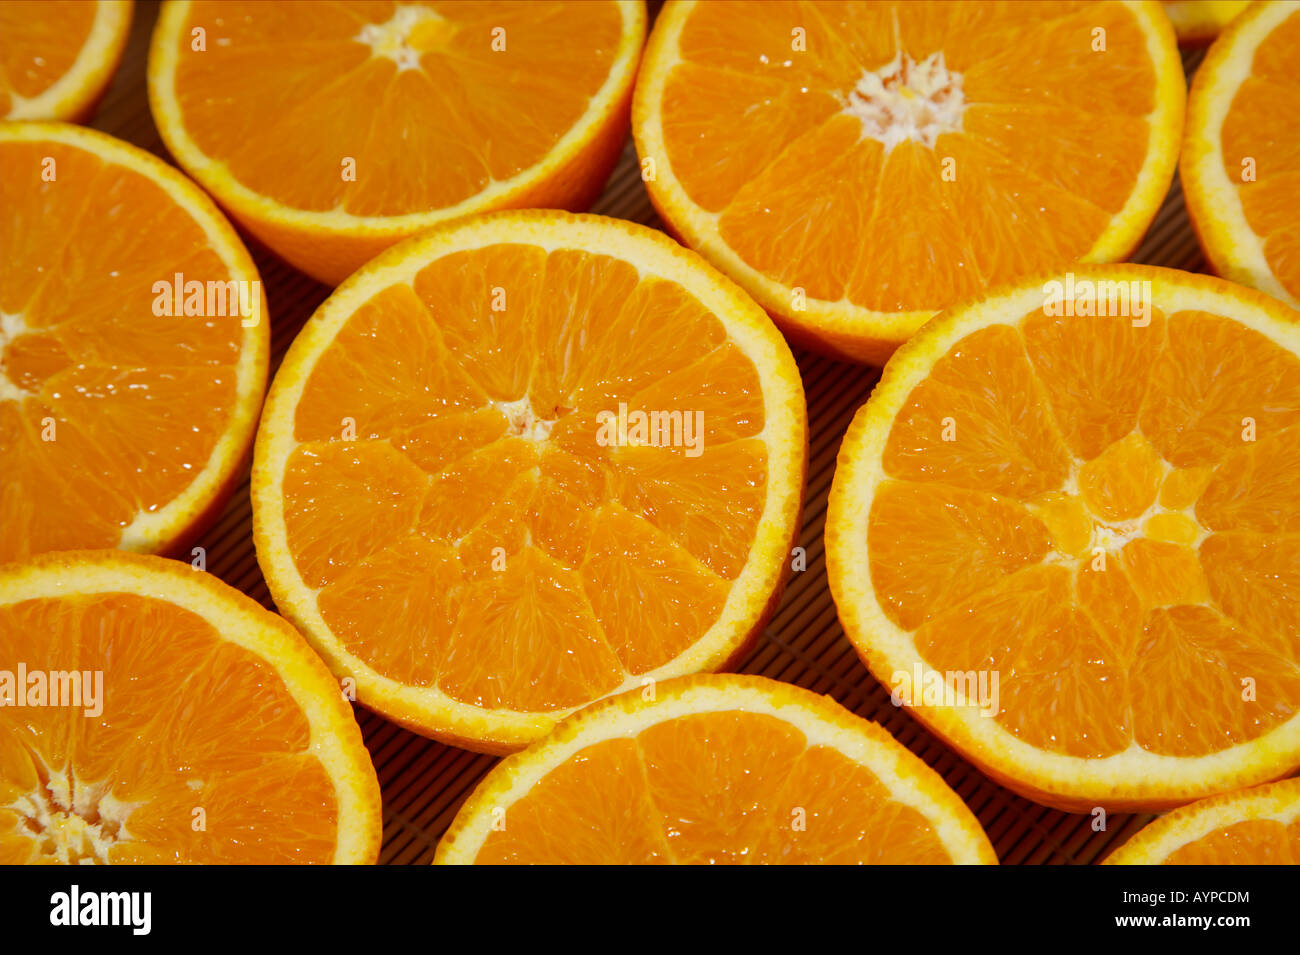 Halved oranges - Stock Image